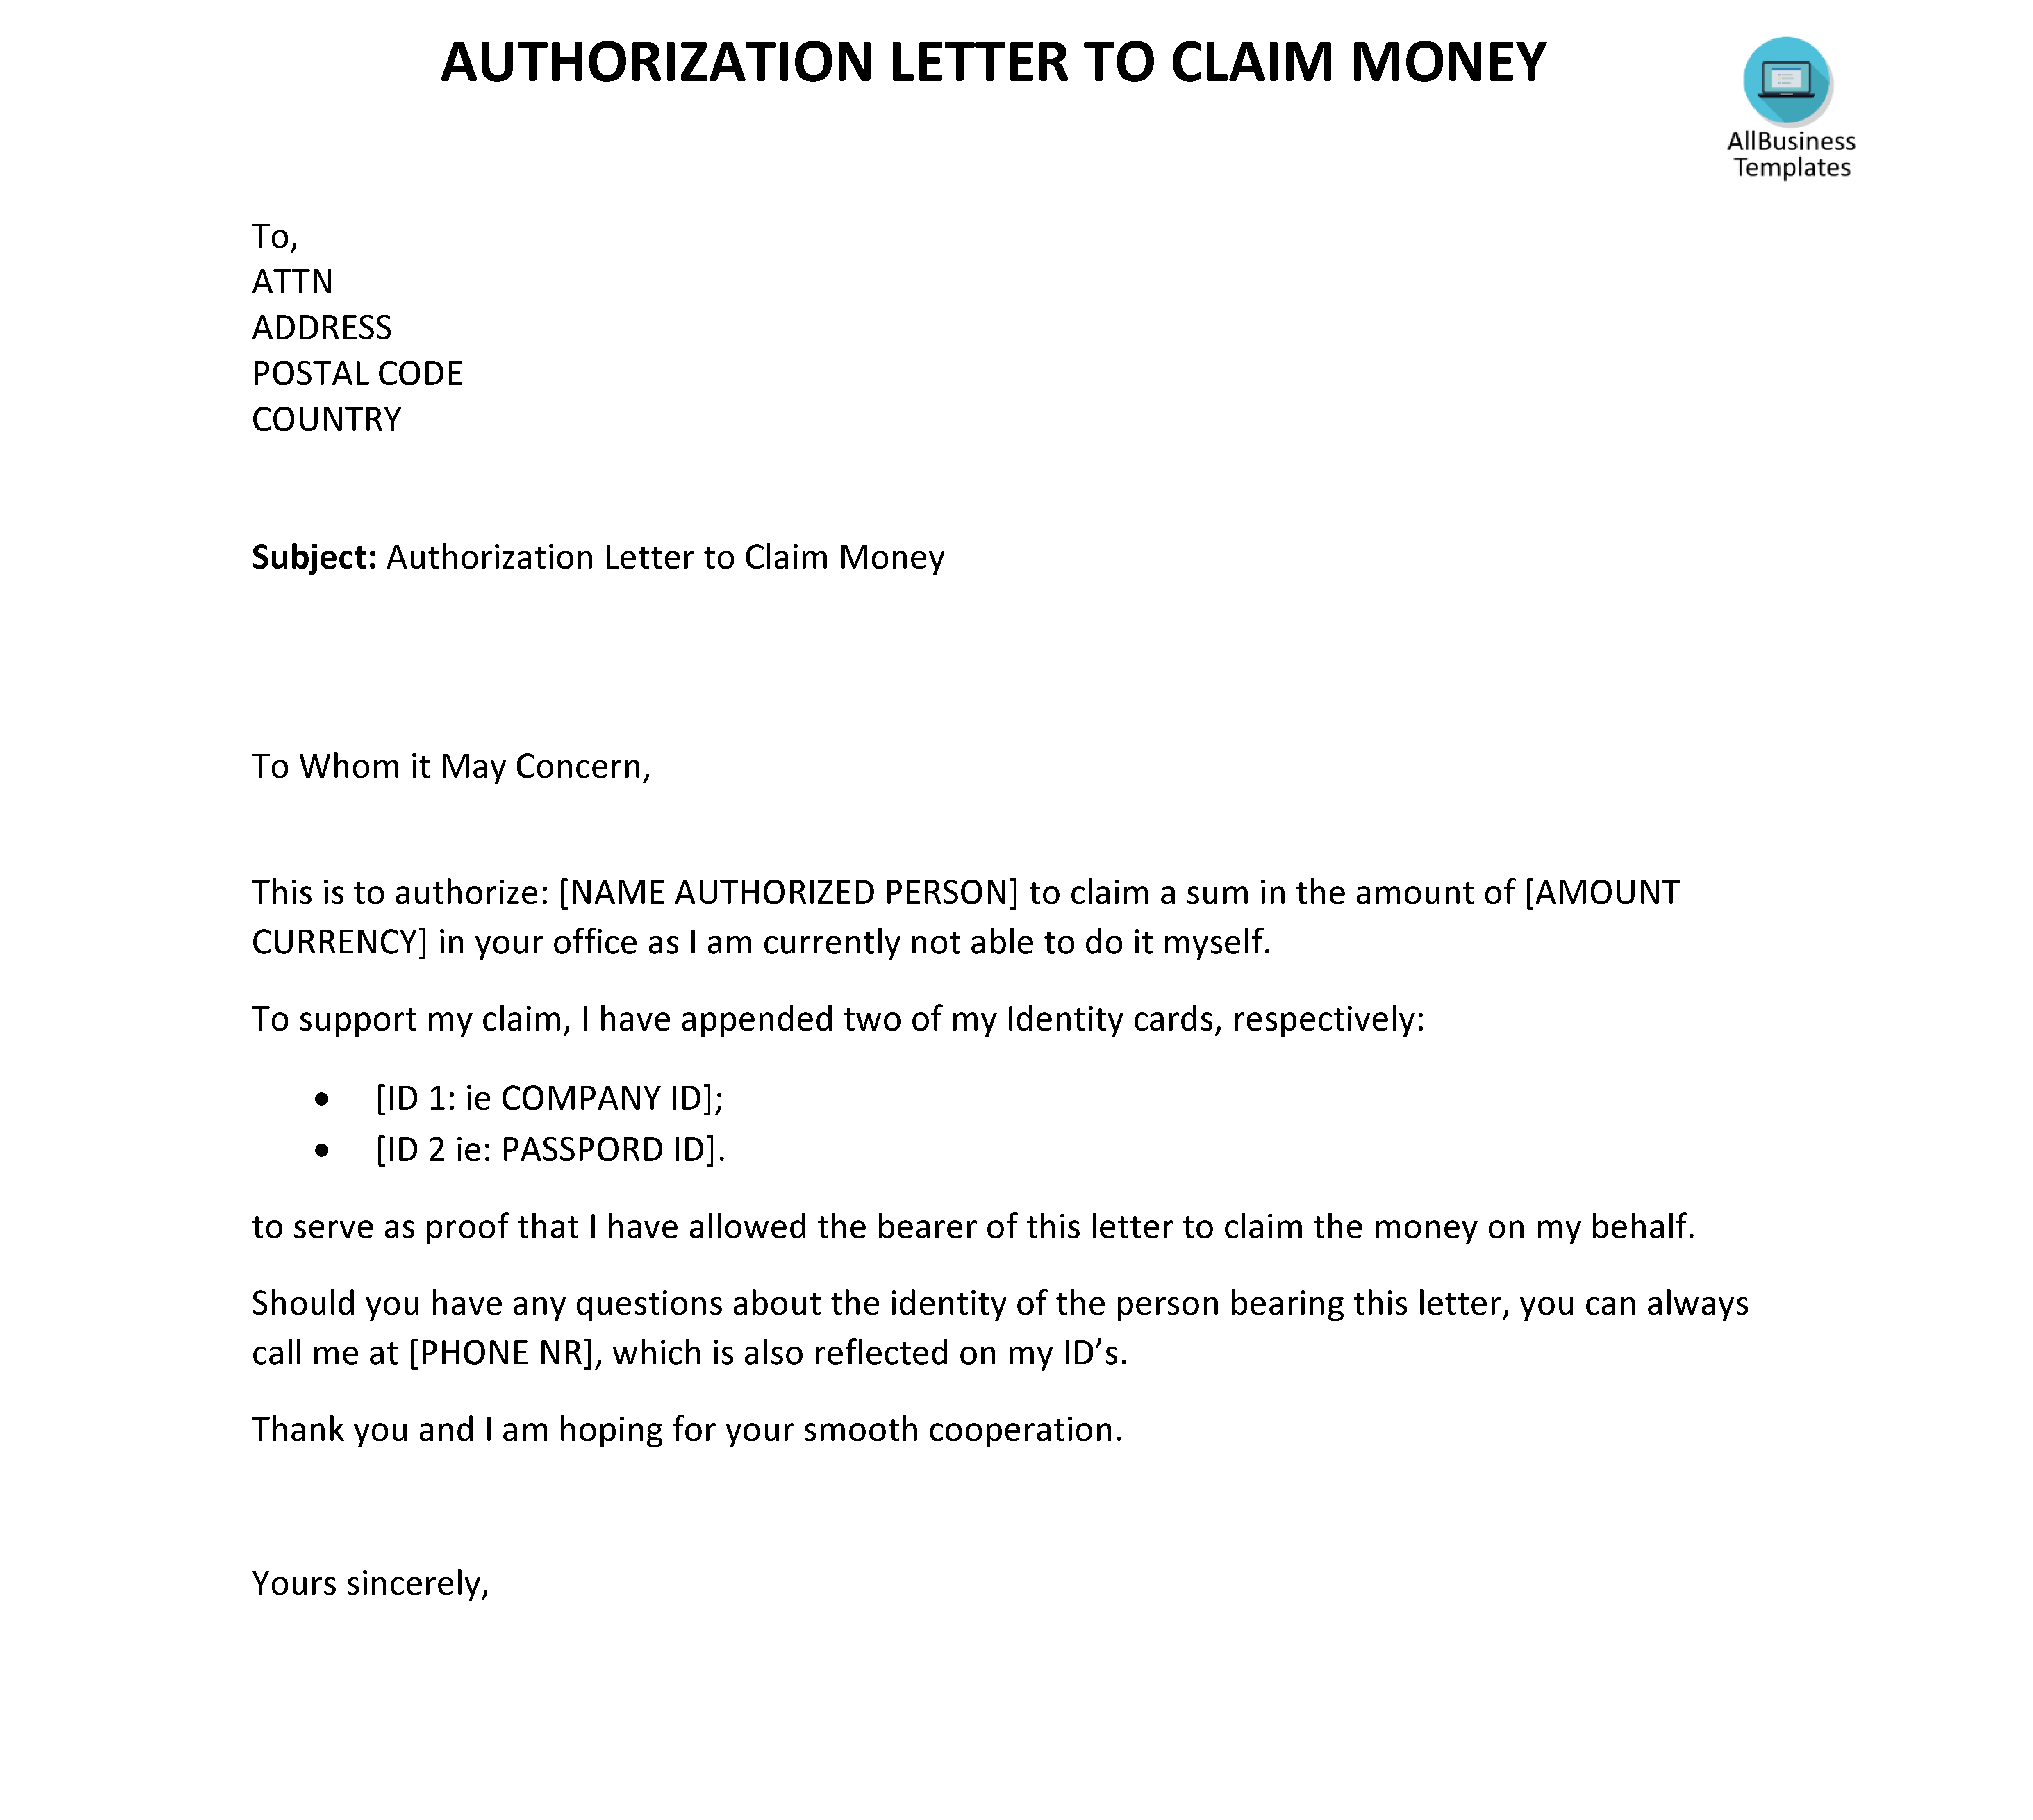 example of authorization letter for permission